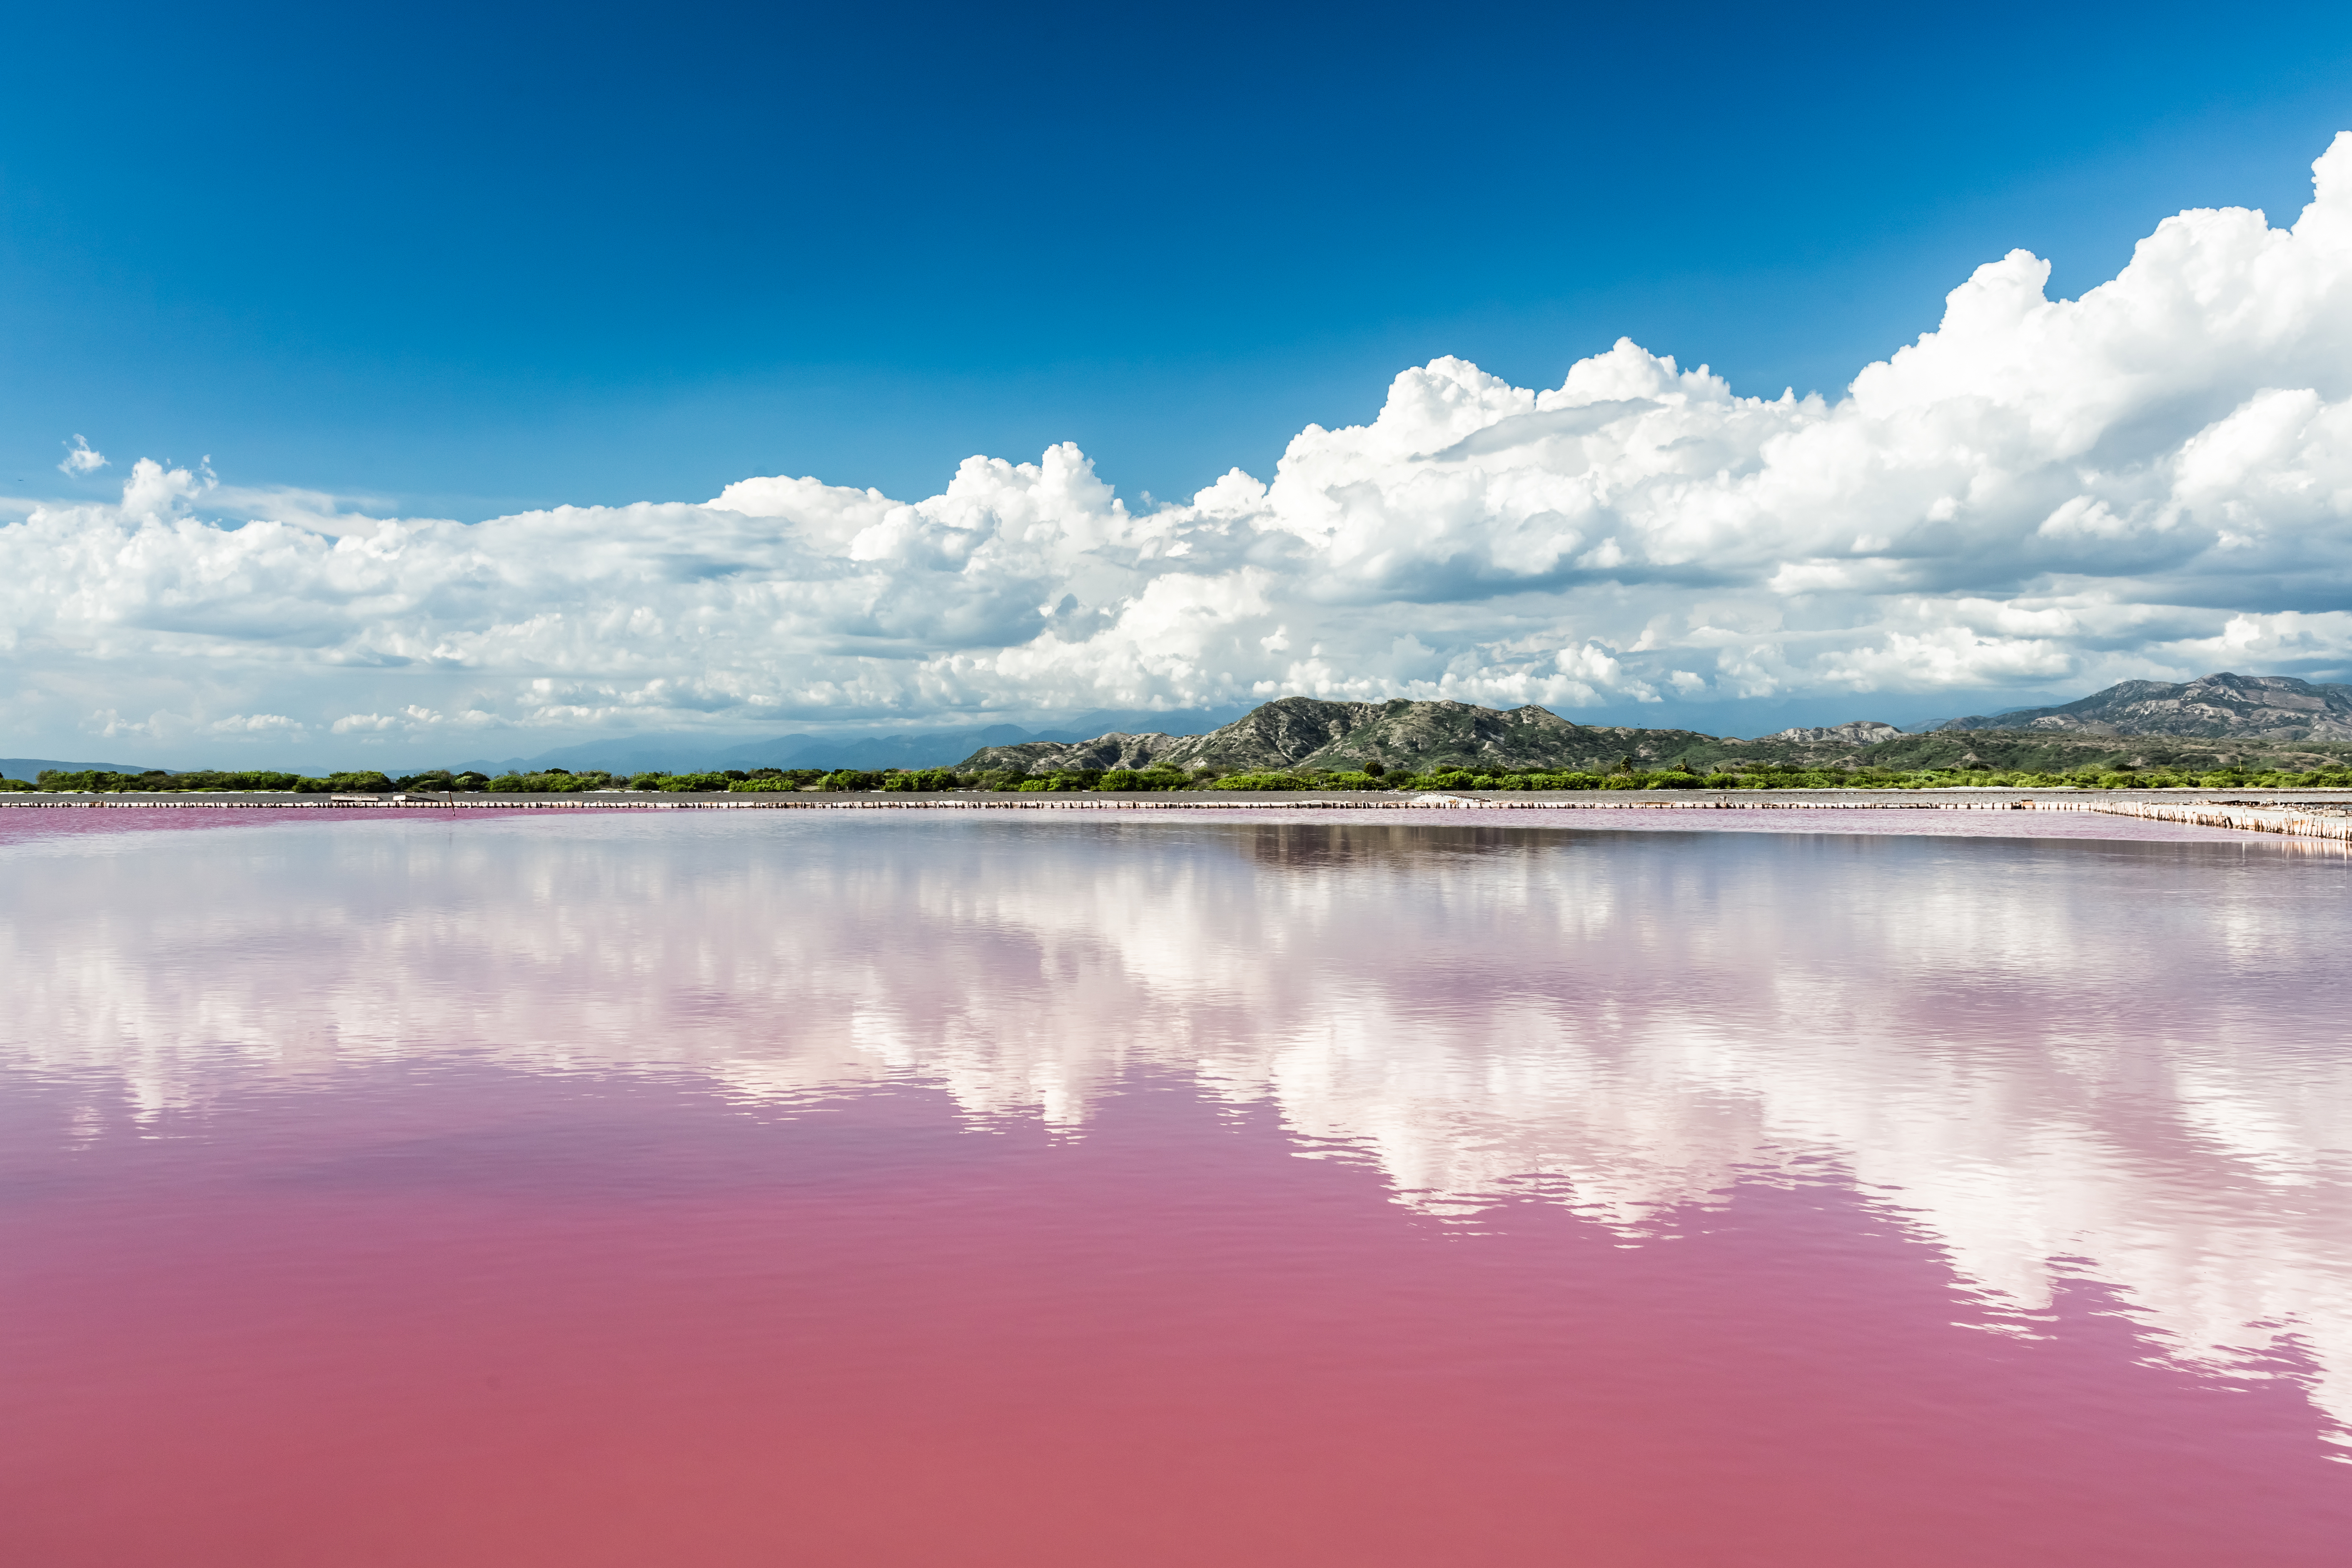 Landscape with Pink water salt lake in Dominican Republic